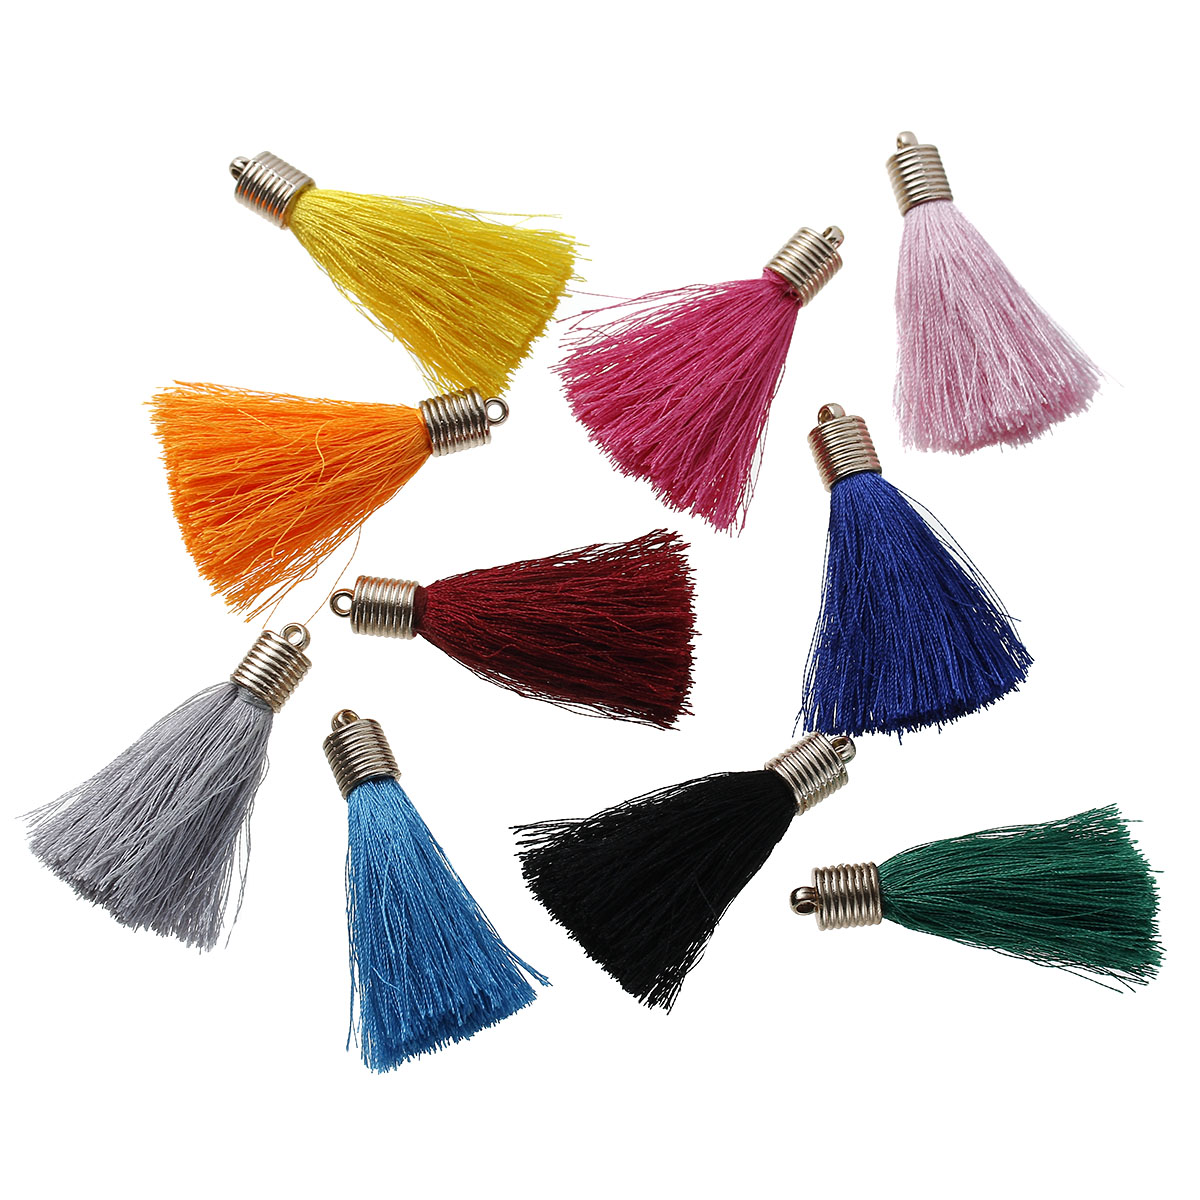 5pcs 55mm Mixed Color Tassel Diy Earring Necklace Jewelry Making Findings  Gold Caps Sewing Accessories Handmade